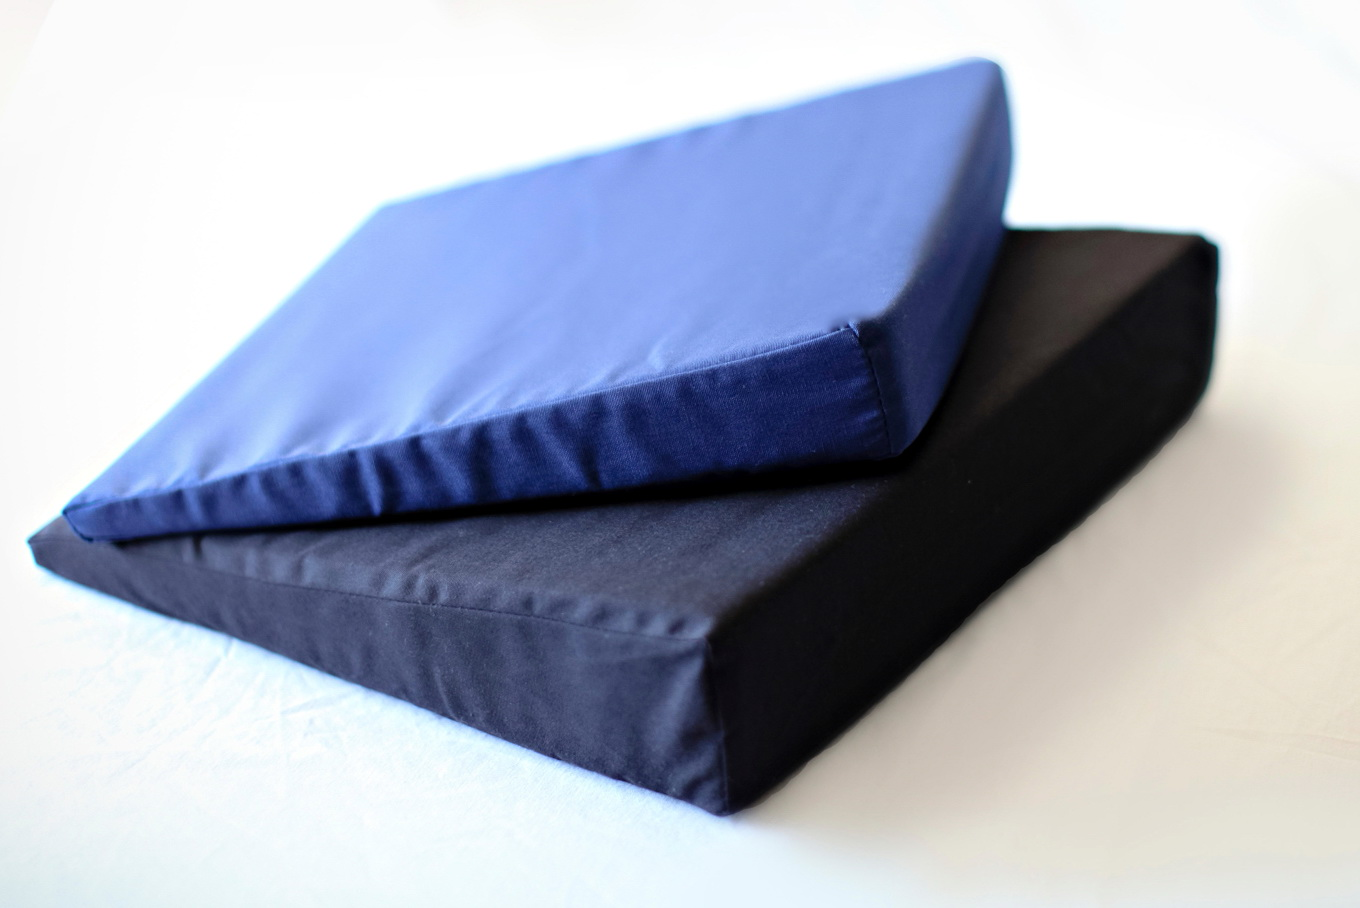 seat cushion for back pain relief home design ideas. Black Bedroom Furniture Sets. Home Design Ideas